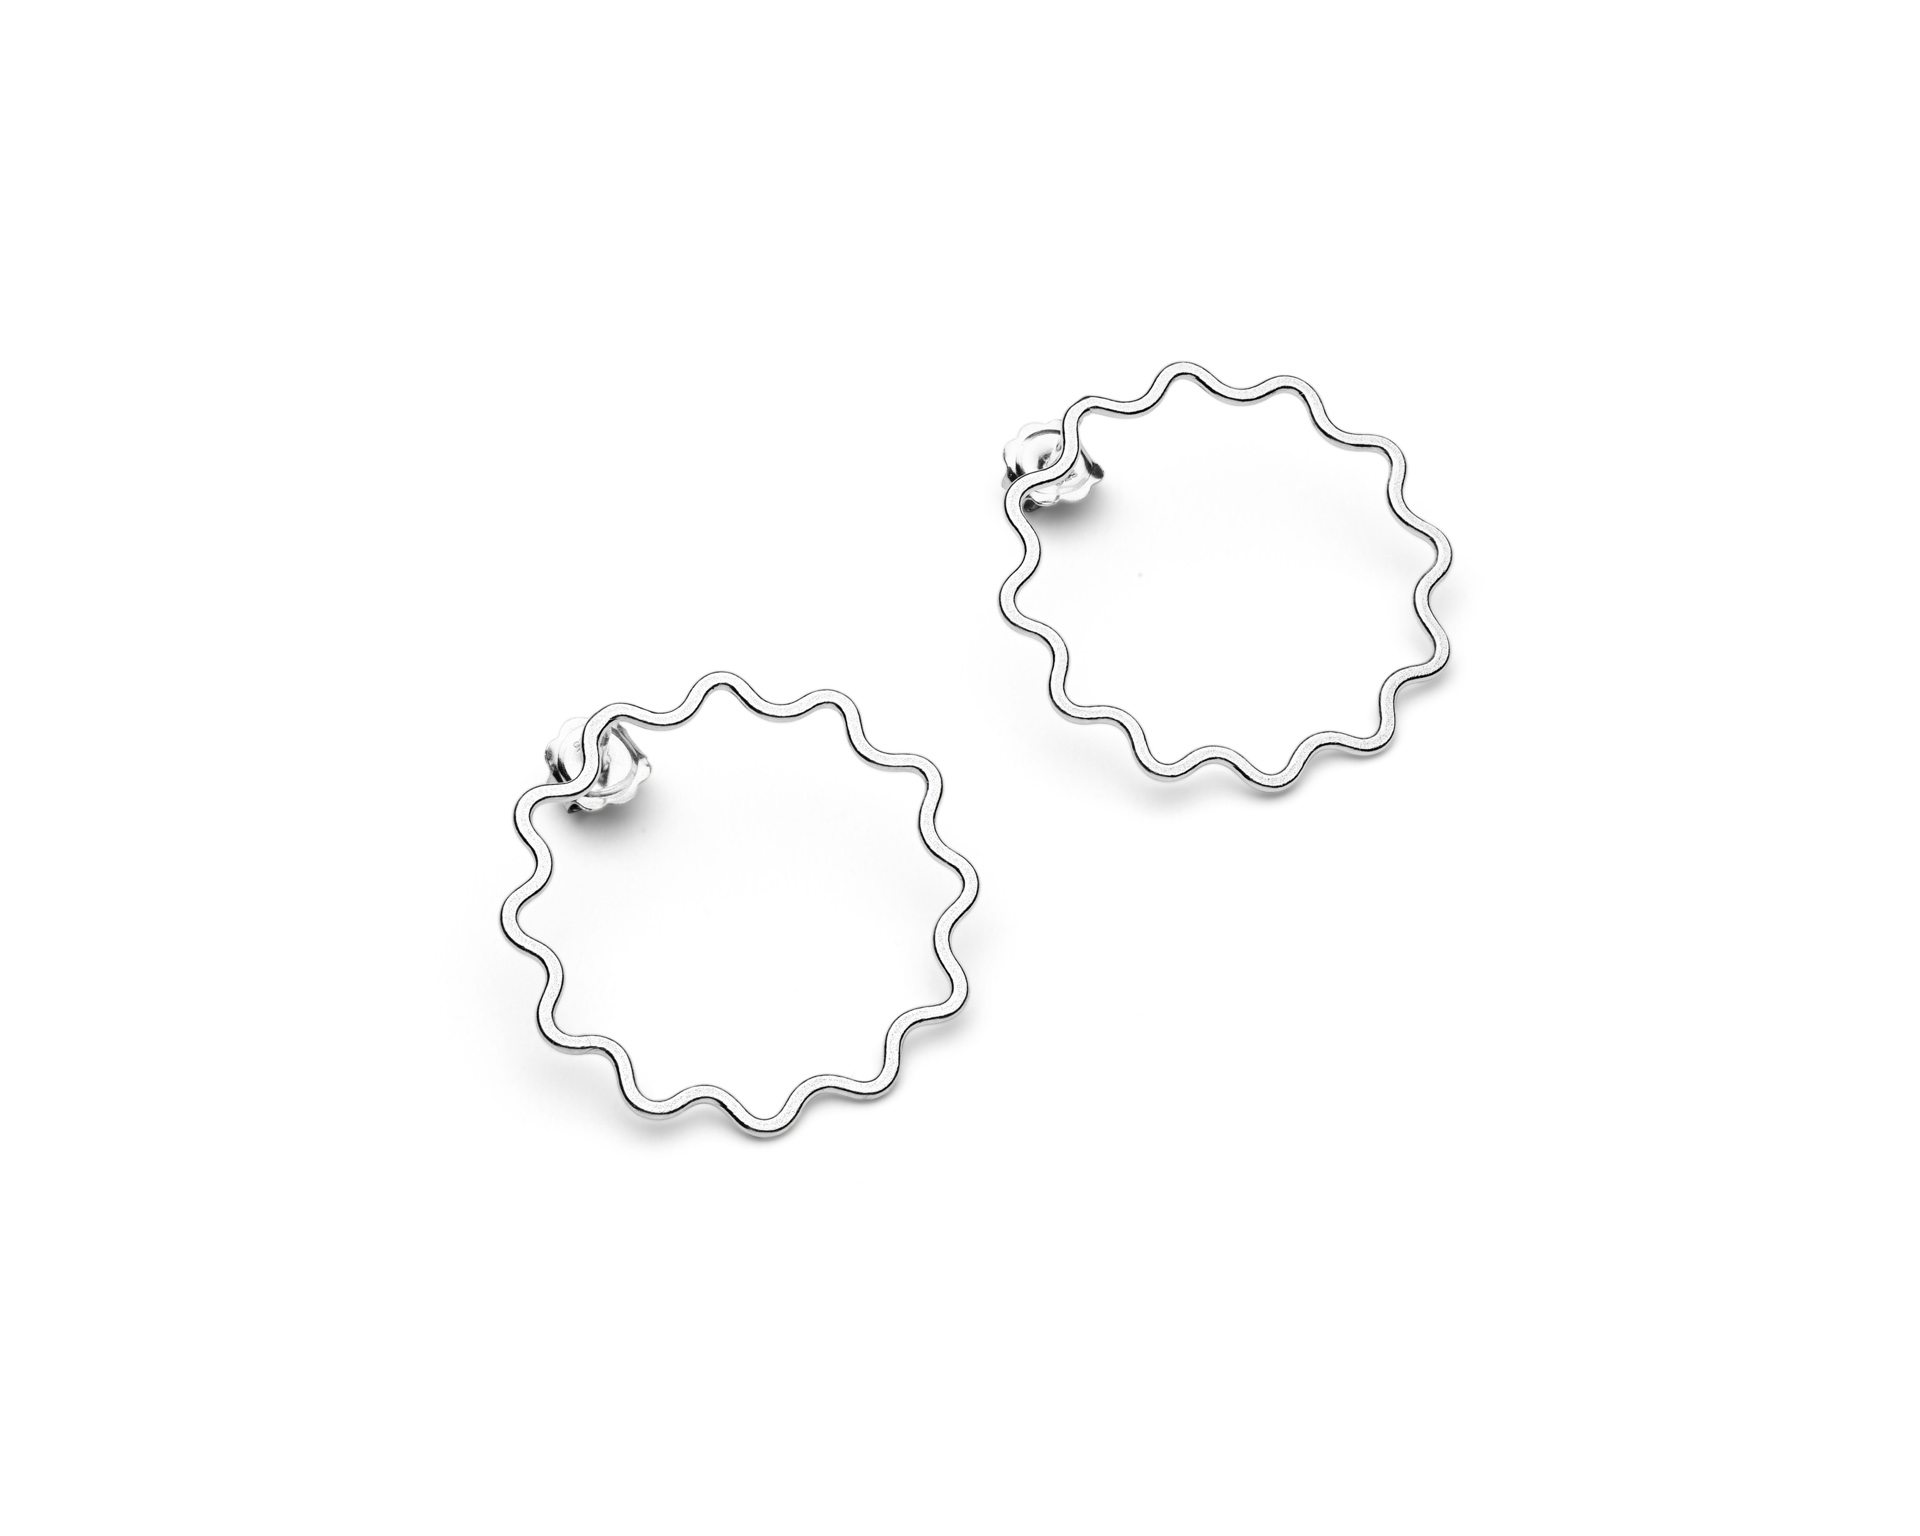 Ripple earrings small silver by Heather Woof Jewellery.jpg